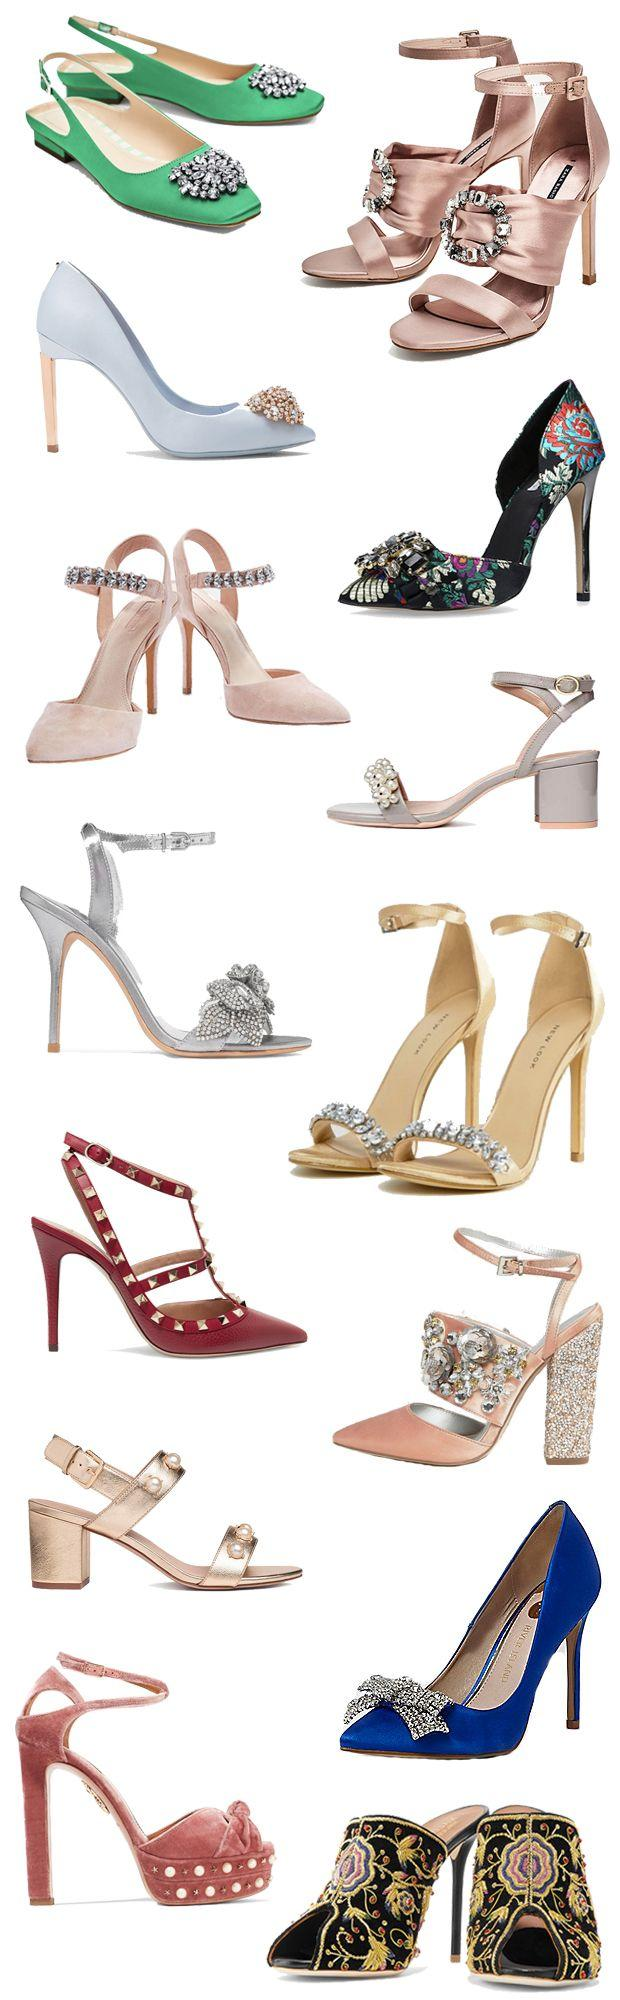 Wedding - Add A Little Sparkle - 14 Embellished Wedding Guest Shoes